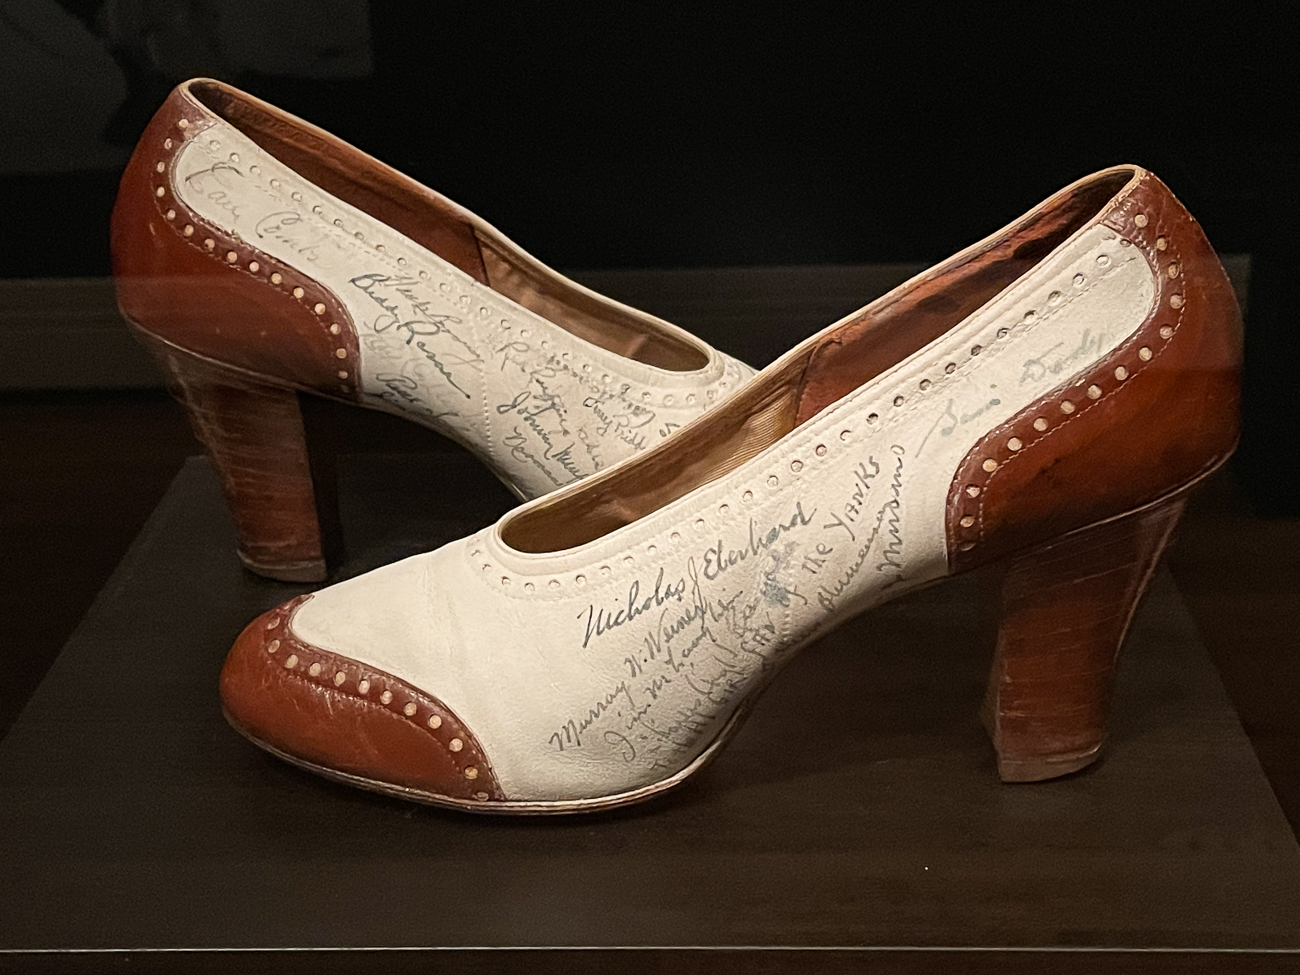 Spectator Pumps Signed by the Yankees, about 1941 / Image: Phil Armstrong, Cincinnati Refined // Published: 3.1.21